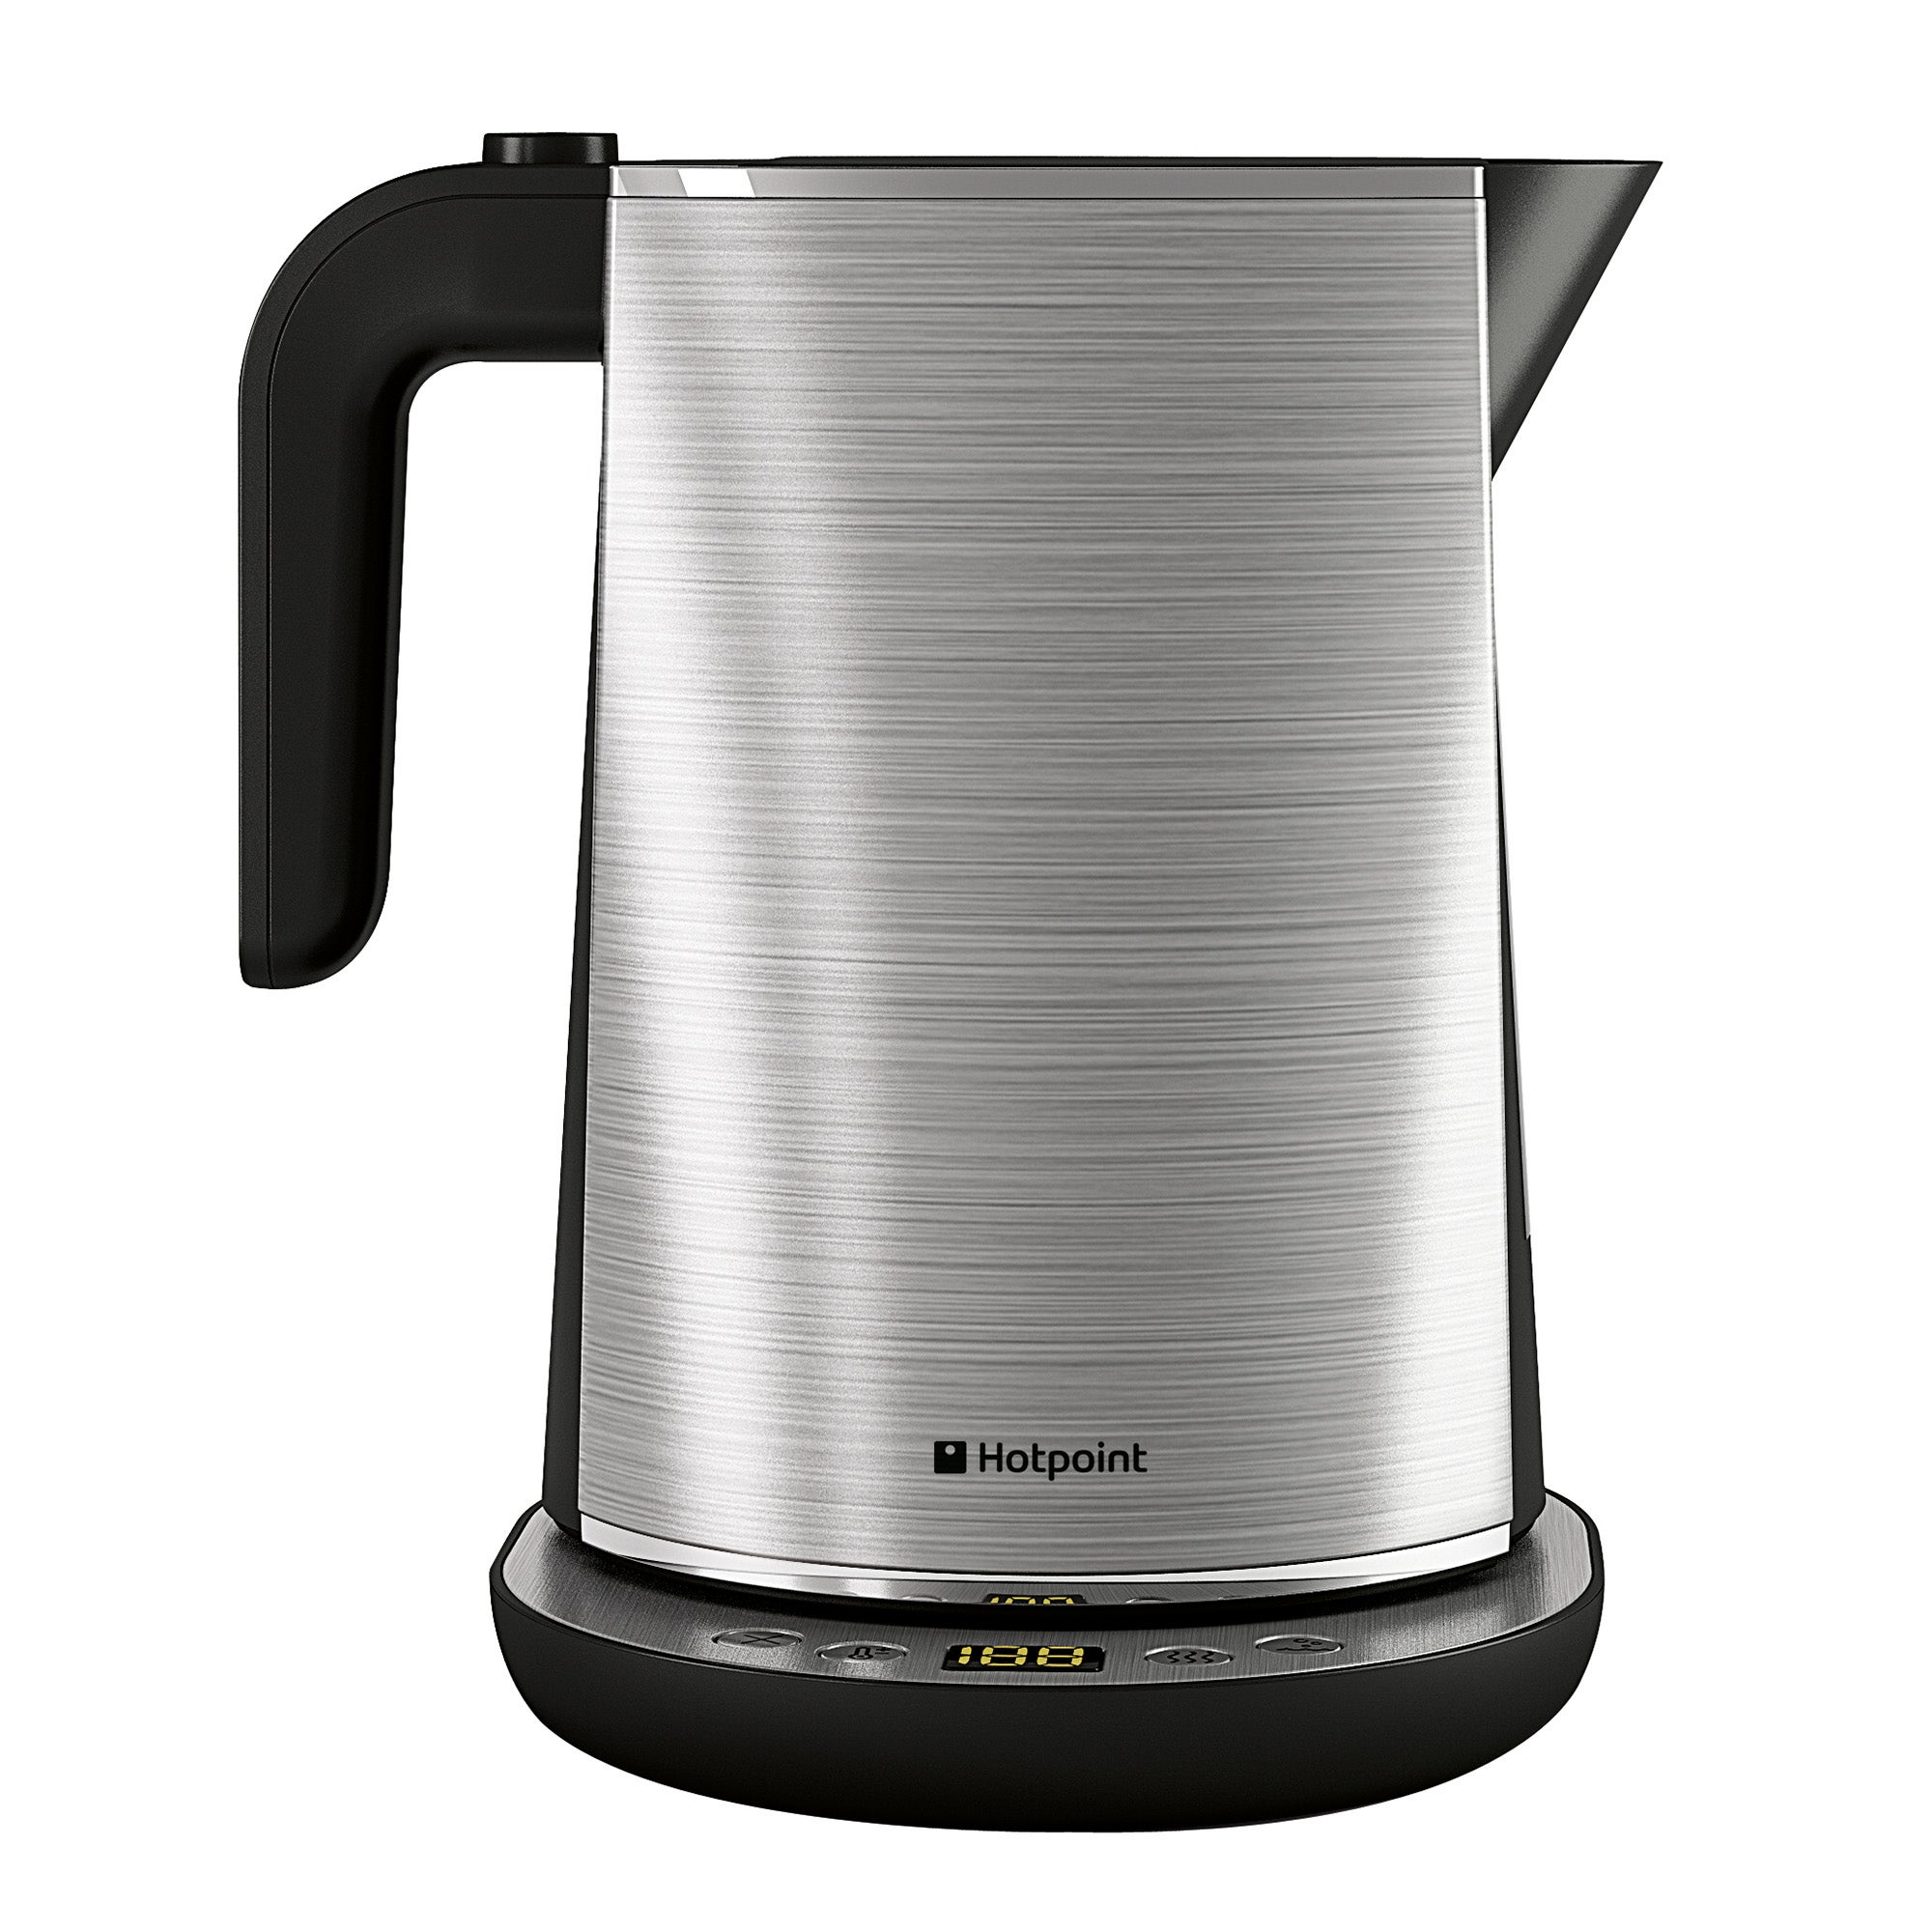 Hotpoint WK30MAXO Electronic Stainless Steel Silver Digital Kettle